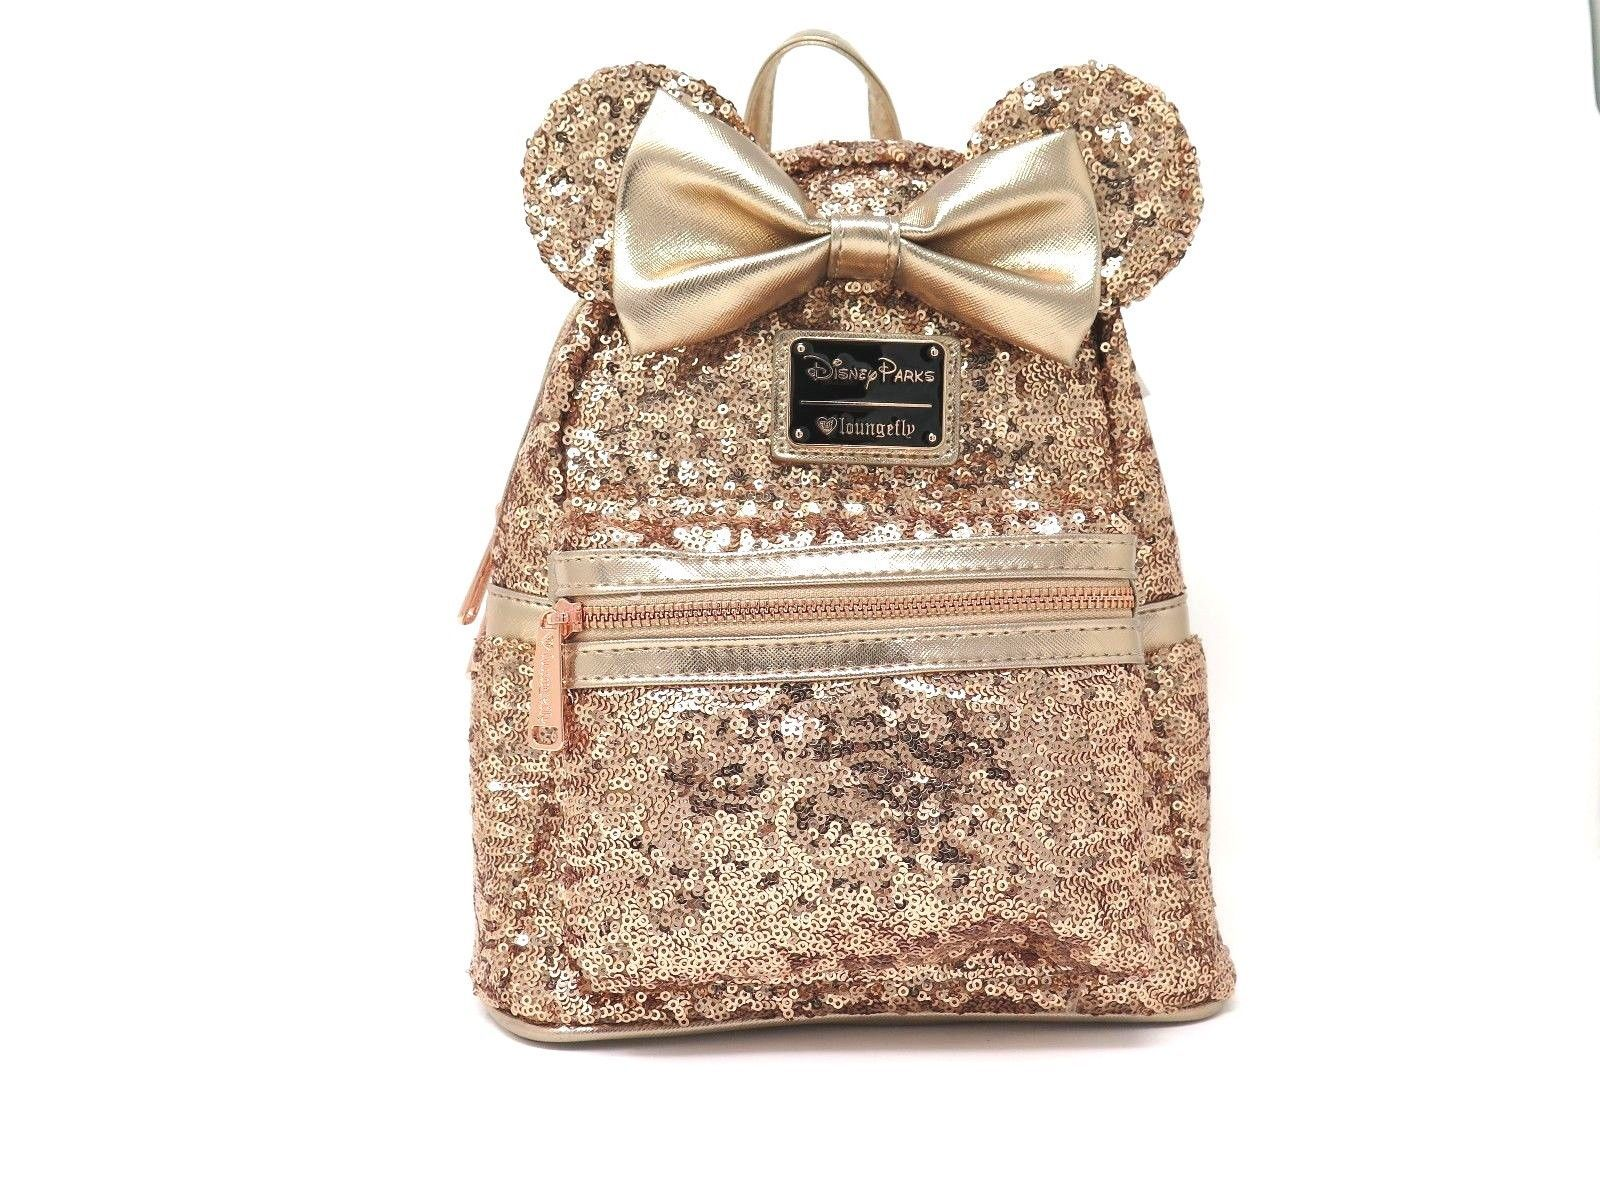 25c0ad8787 57. 57. Previous. Disney Parks Loungefly Rose Gold Sequin Minnie Mini  Backpack Purse Bag WDW Bow